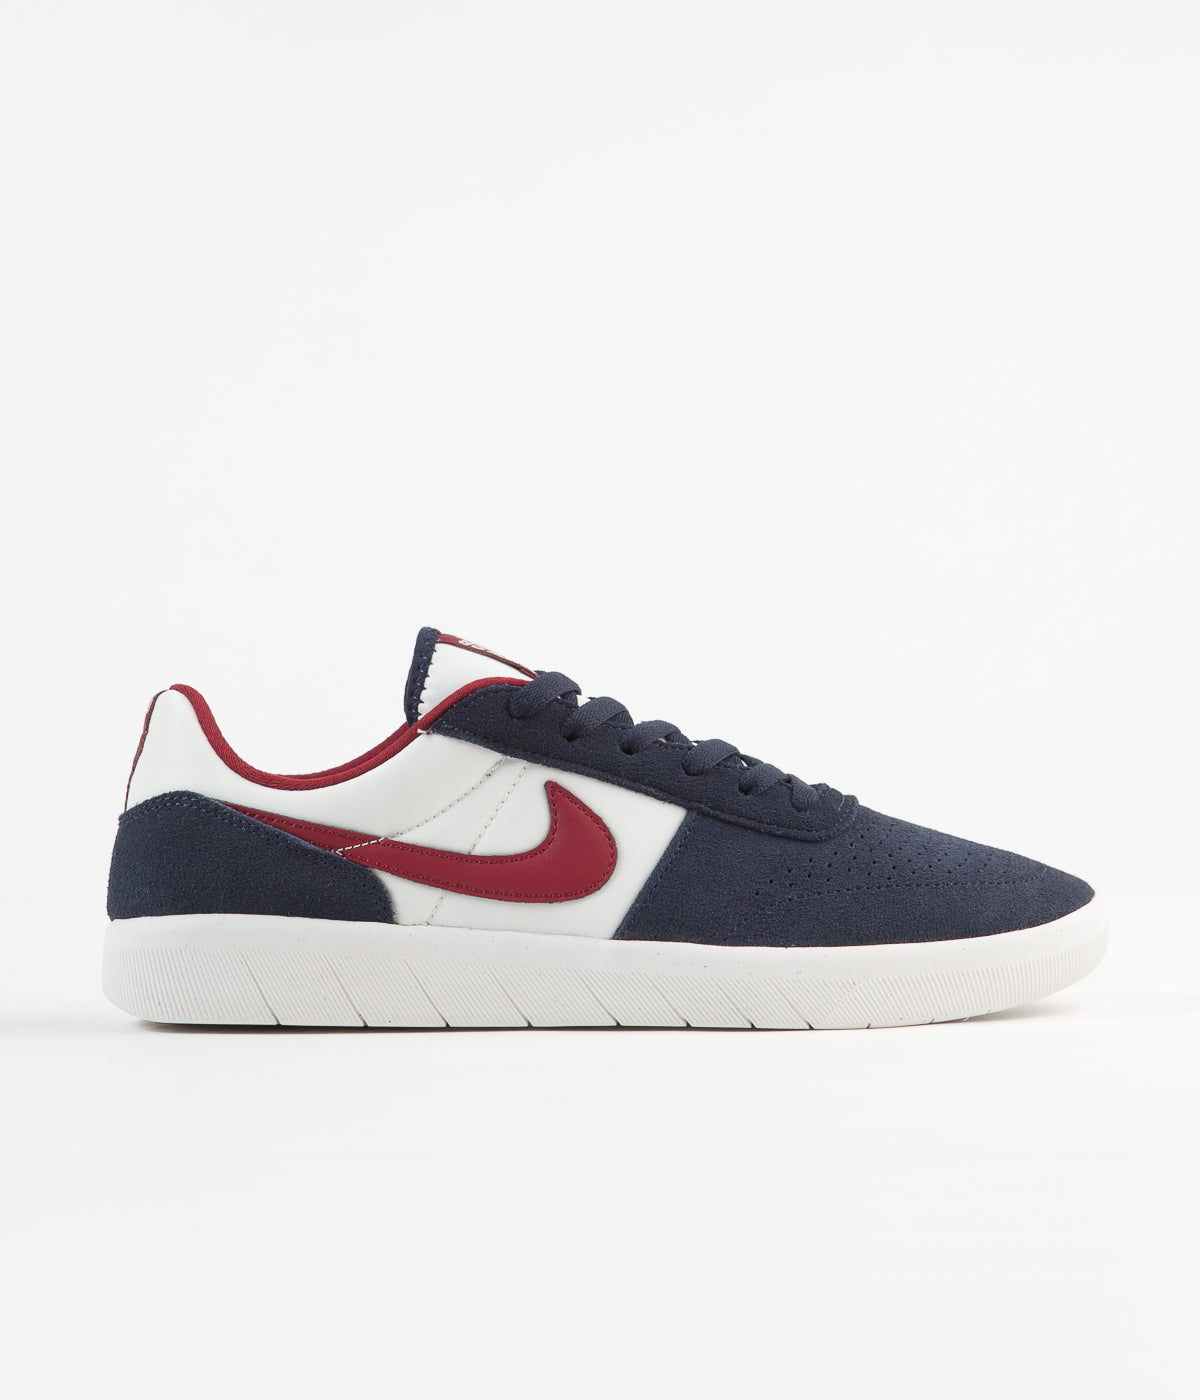 fb2c80d220 Nike SB Team Classic Shoes - Obsidian / Team Red - Summit White ...